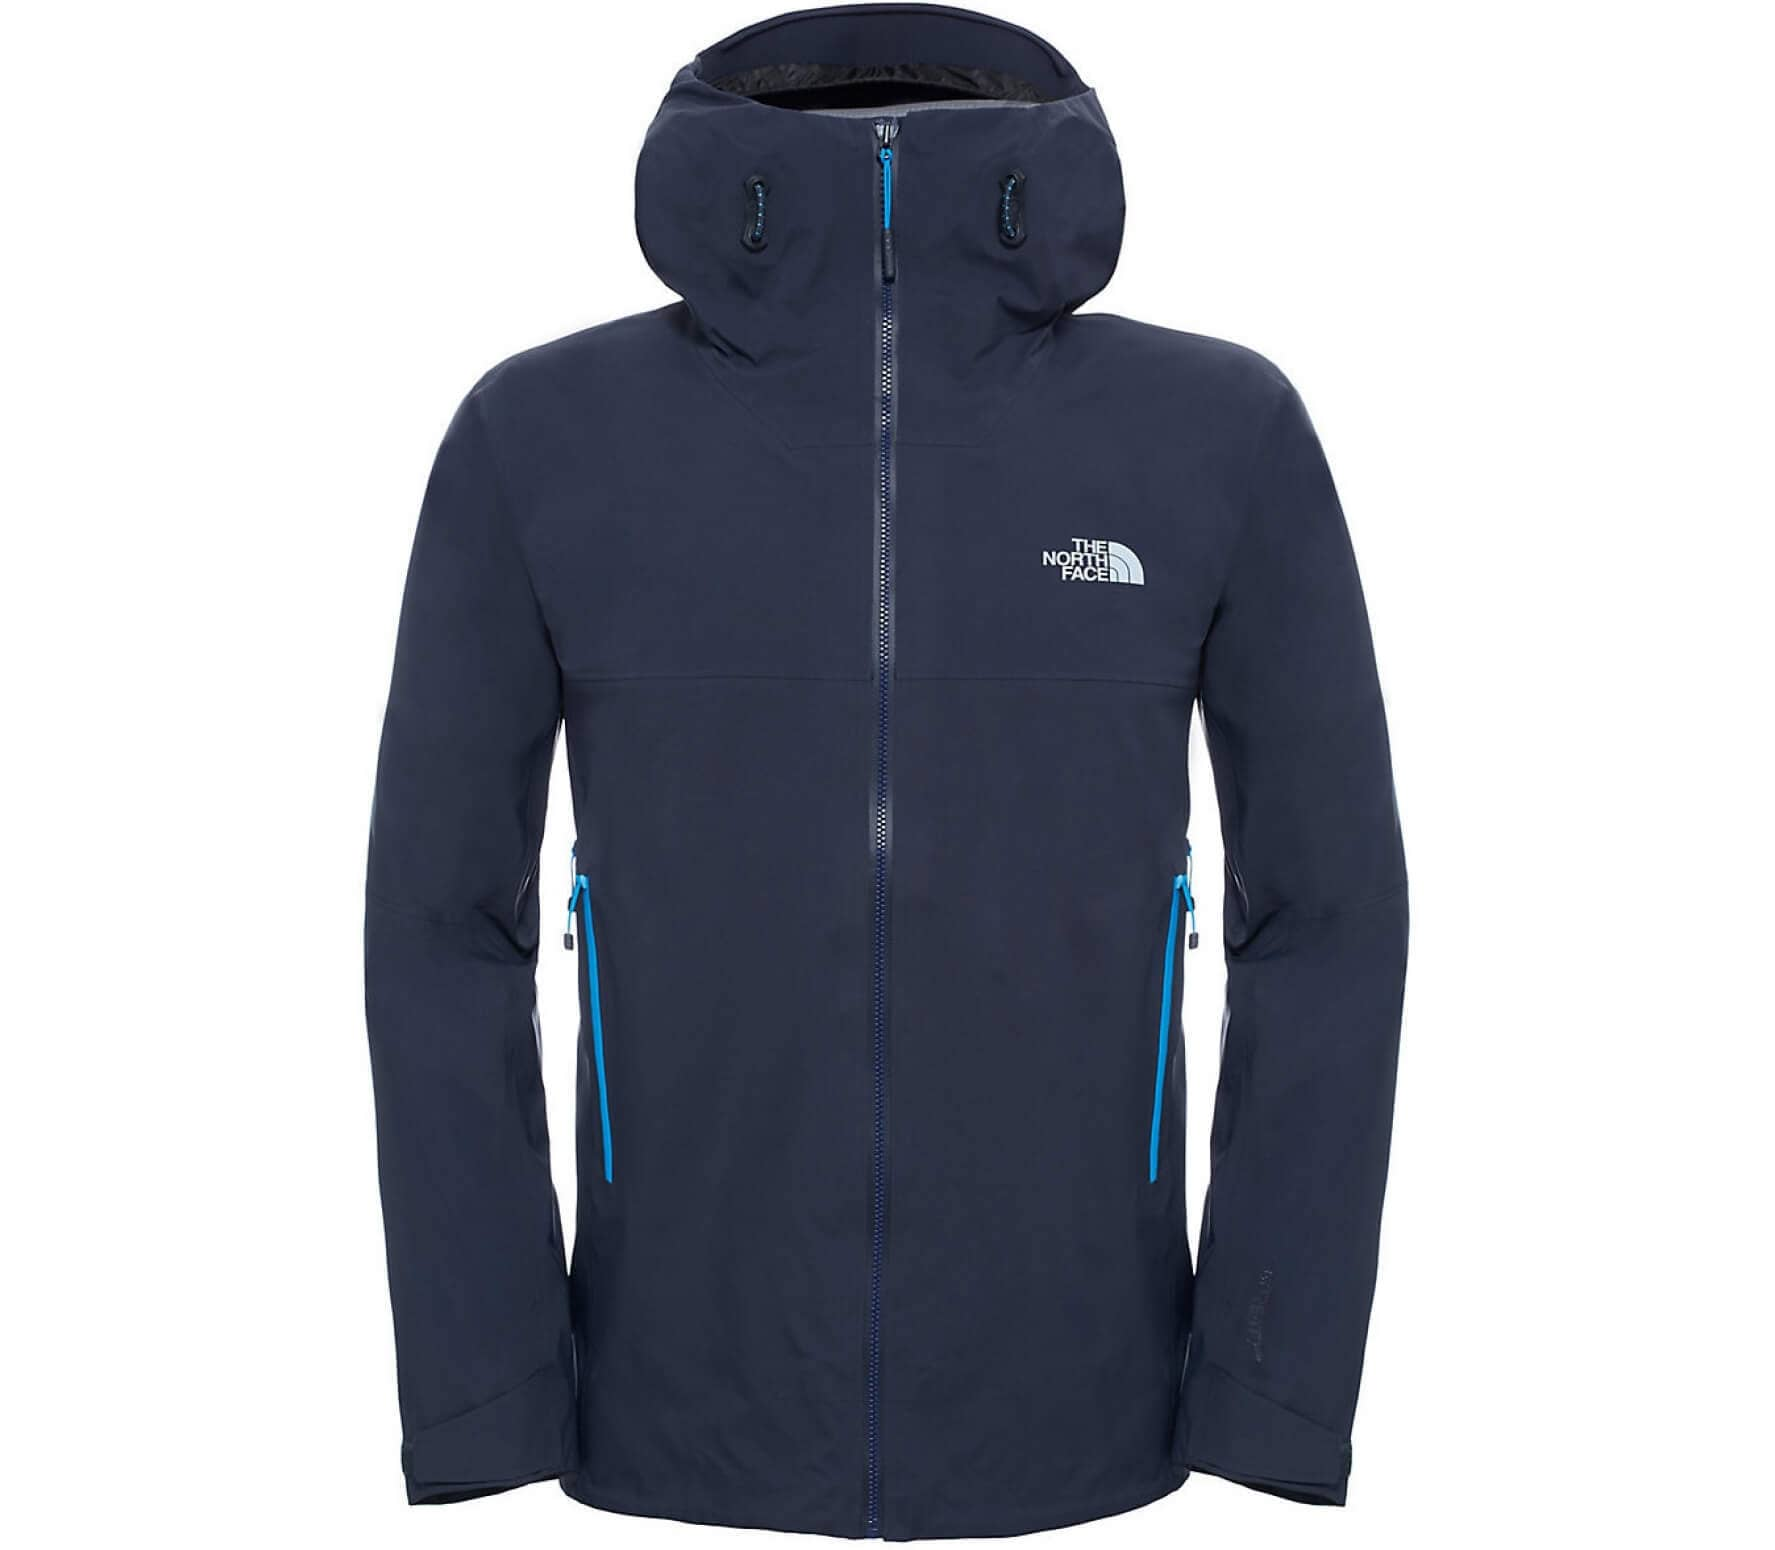 THE NORTH FACE Online Shop order now at KELLER SPORTS